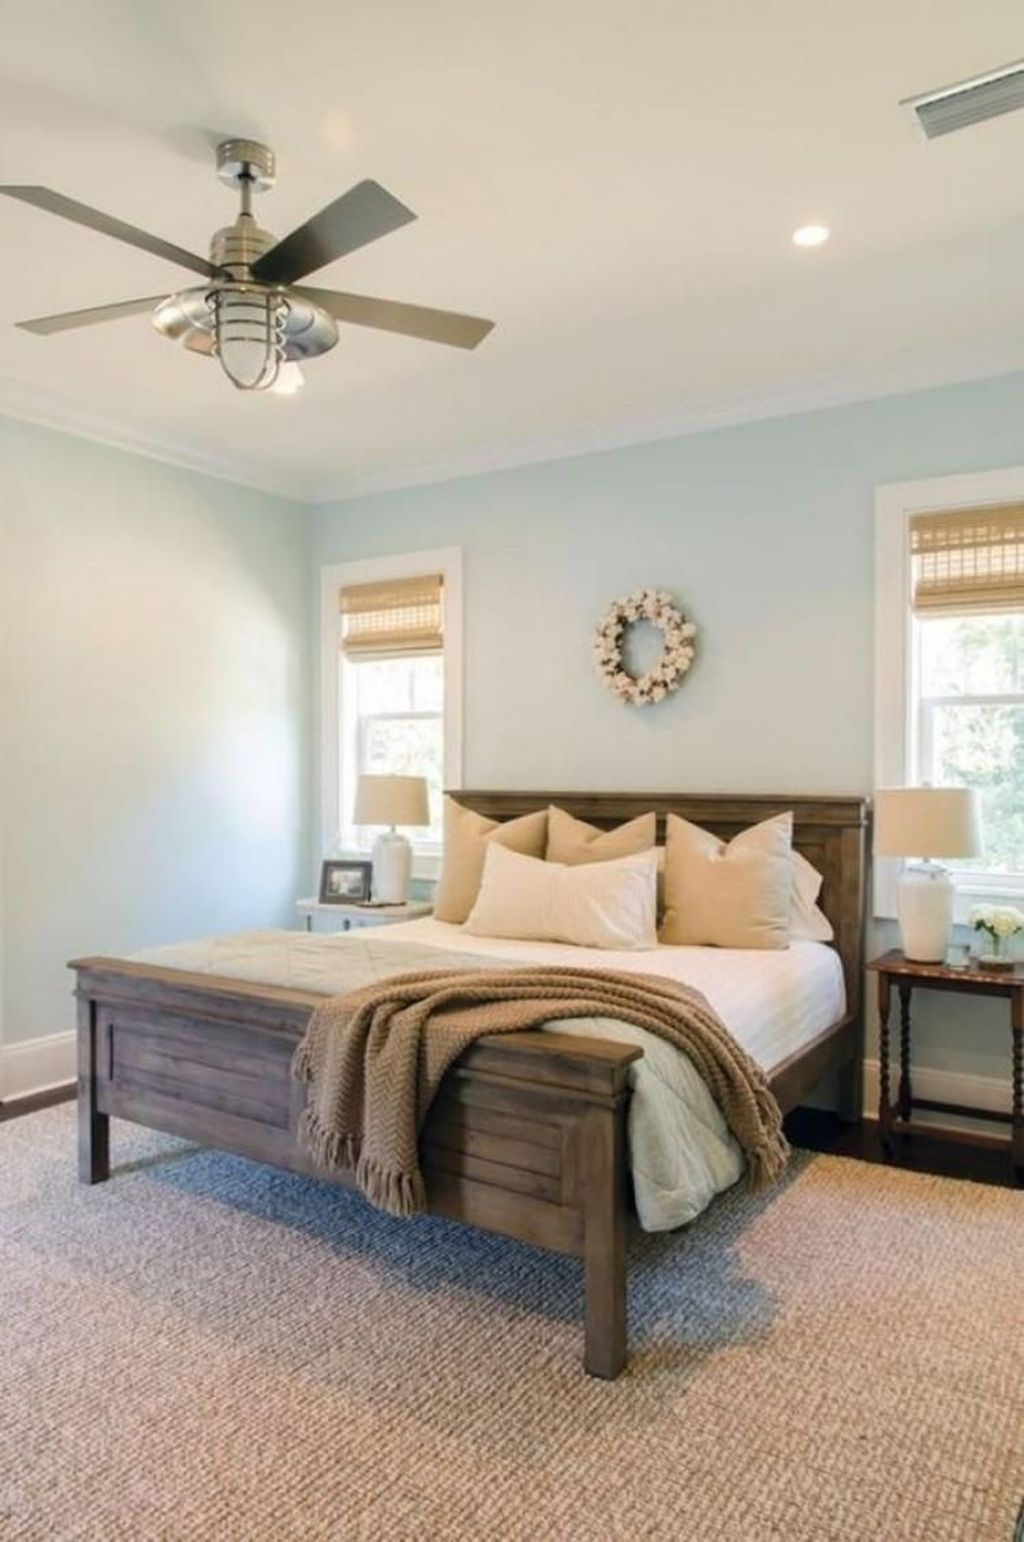 Awesome 20 Fancy Small Master Bedroom Design